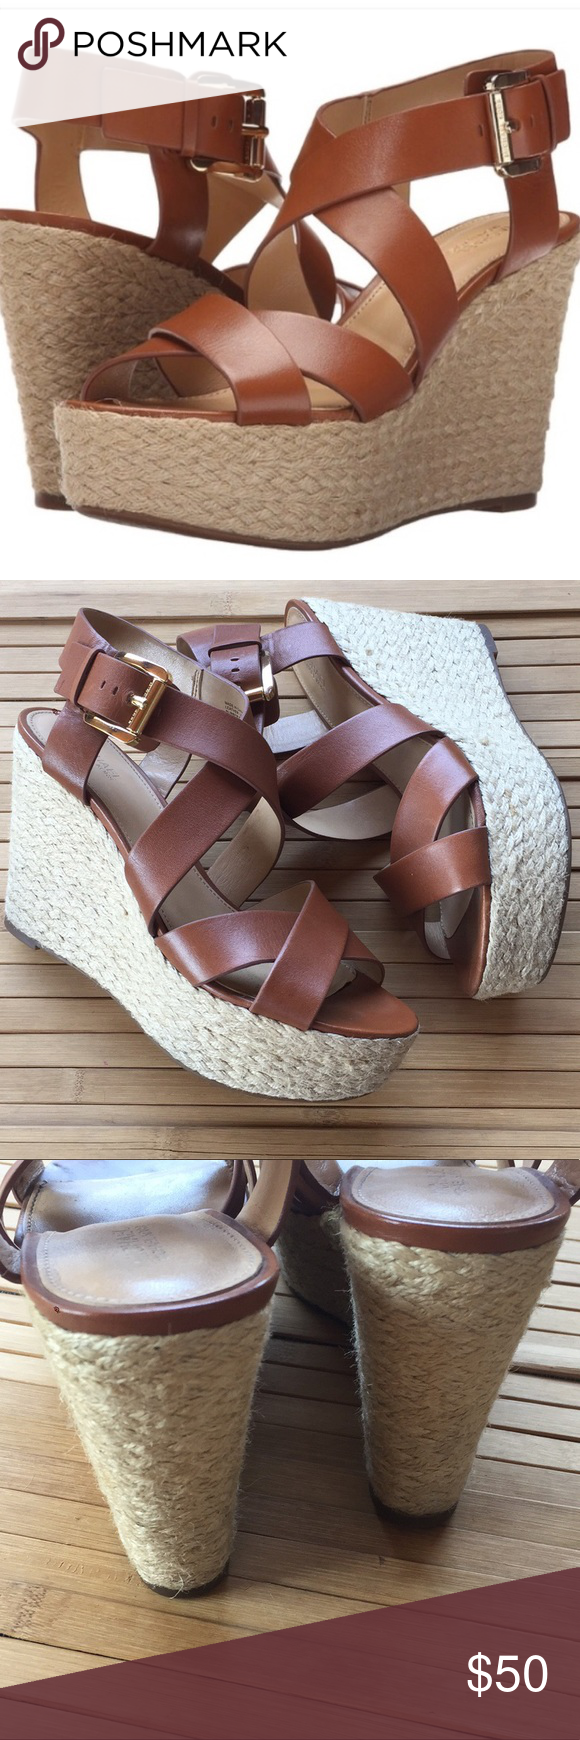 a4d44da114f Michael Kors Celia Wedge peep toe 8 M MICHAEL Kors Women s Celia peep toe  wedge sandals Espadrilles Sz 8M Leather upper